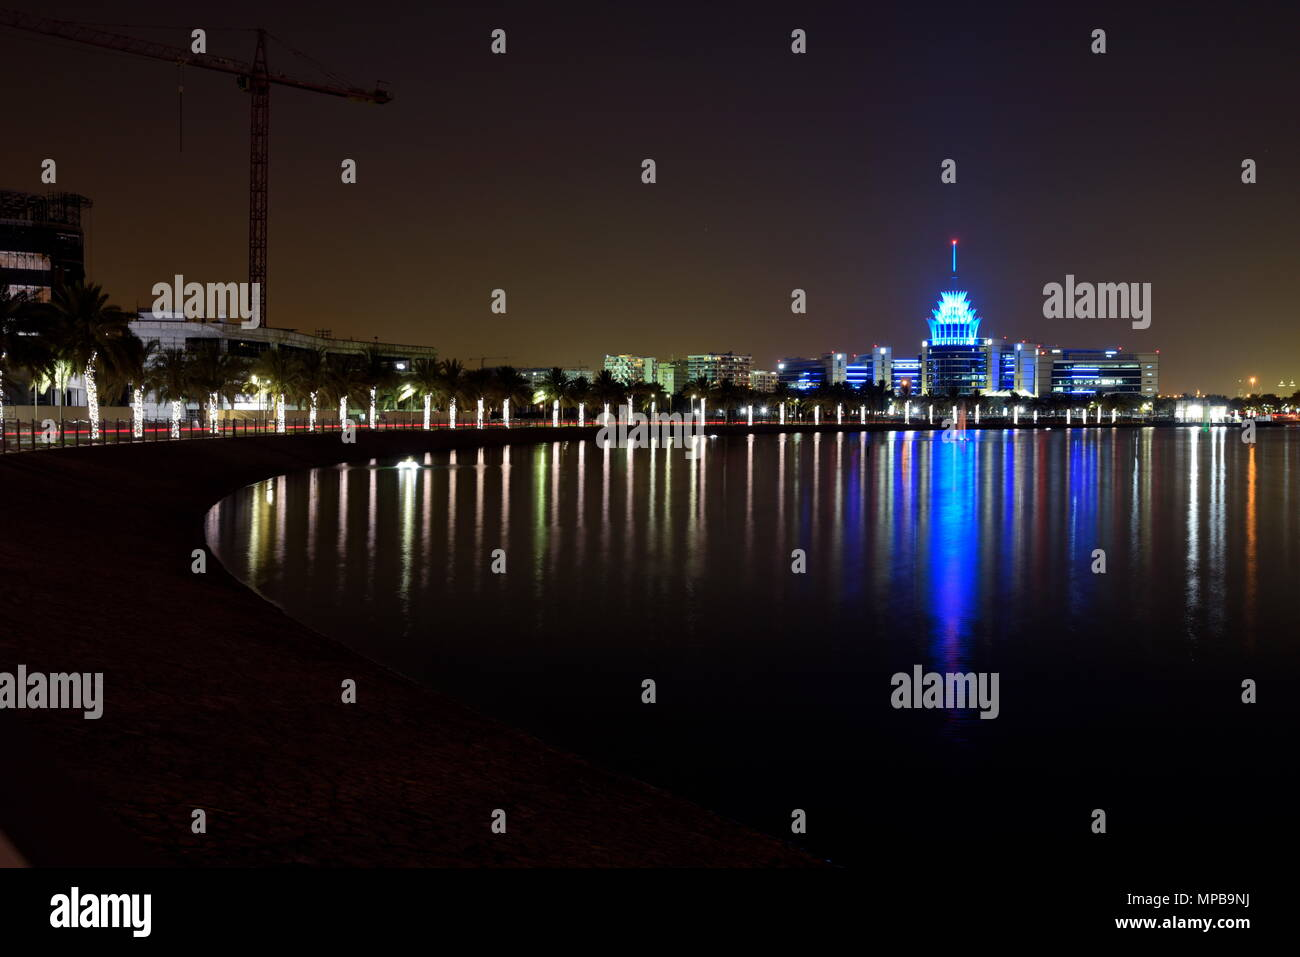 Dubai, United Arab Emirates - May 21, 2018: Dubai Silicon Oasis Headquarters Building with Lake view at night, Established in 2014 a free zone owned b - Stock Image